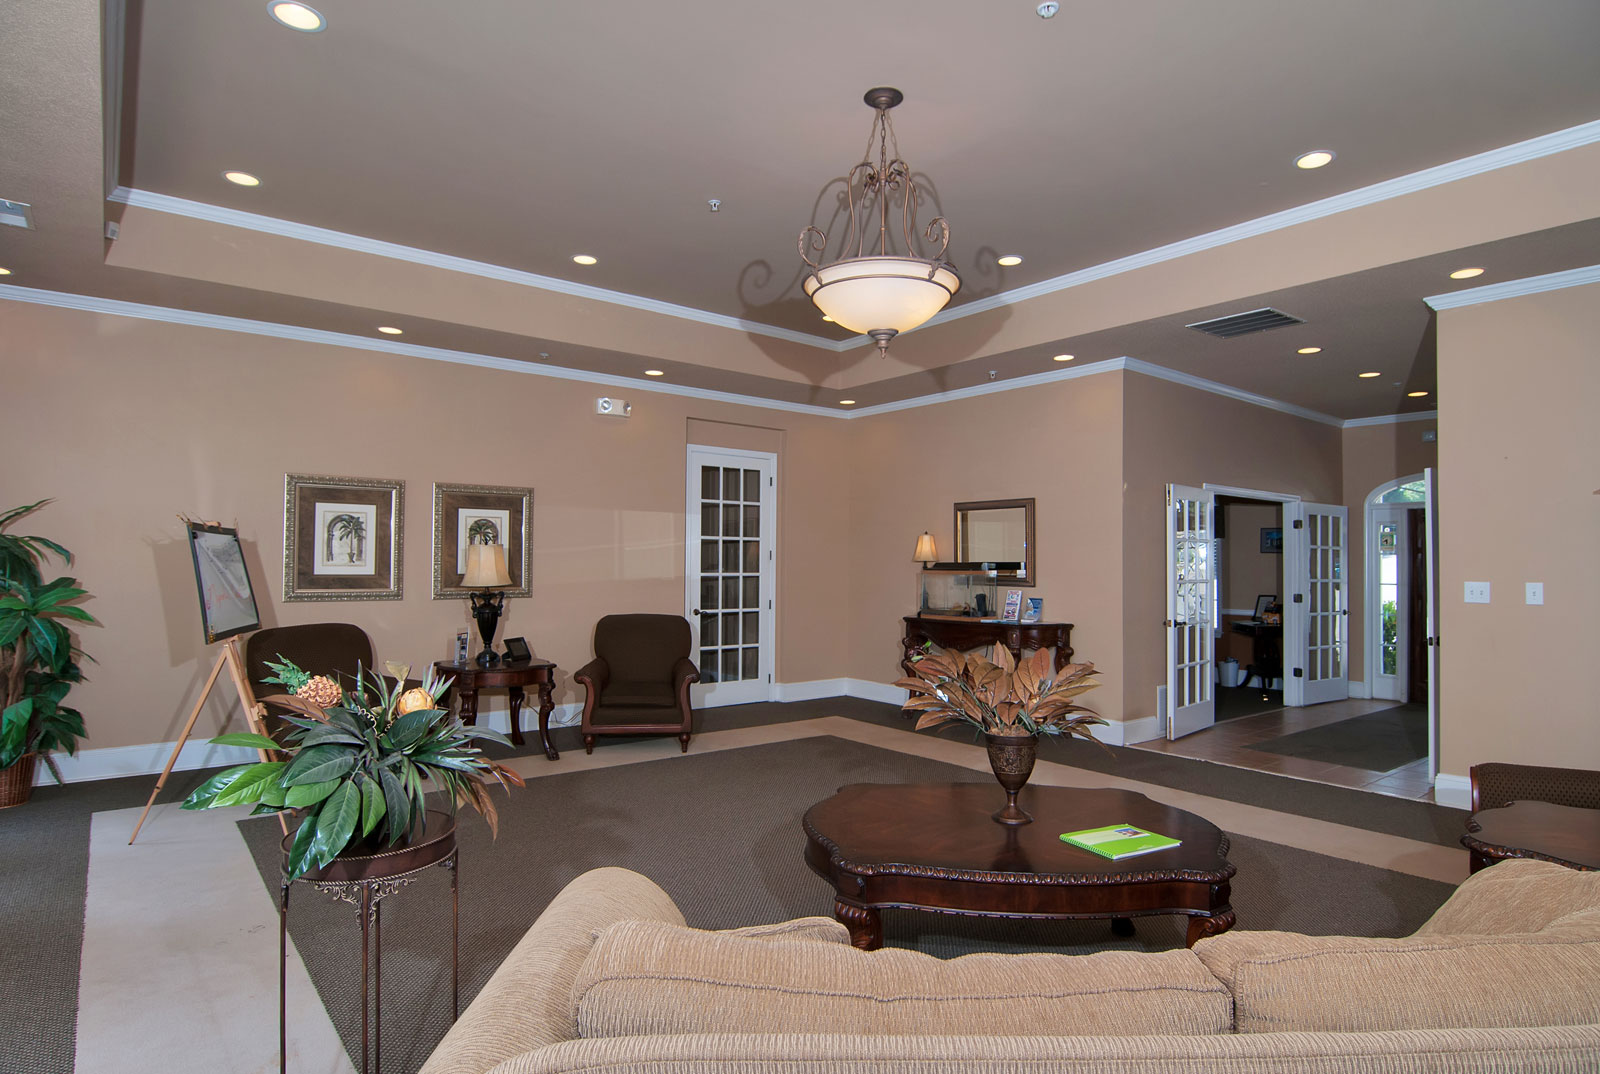 Visit apartments in Dallas leasing center for more information